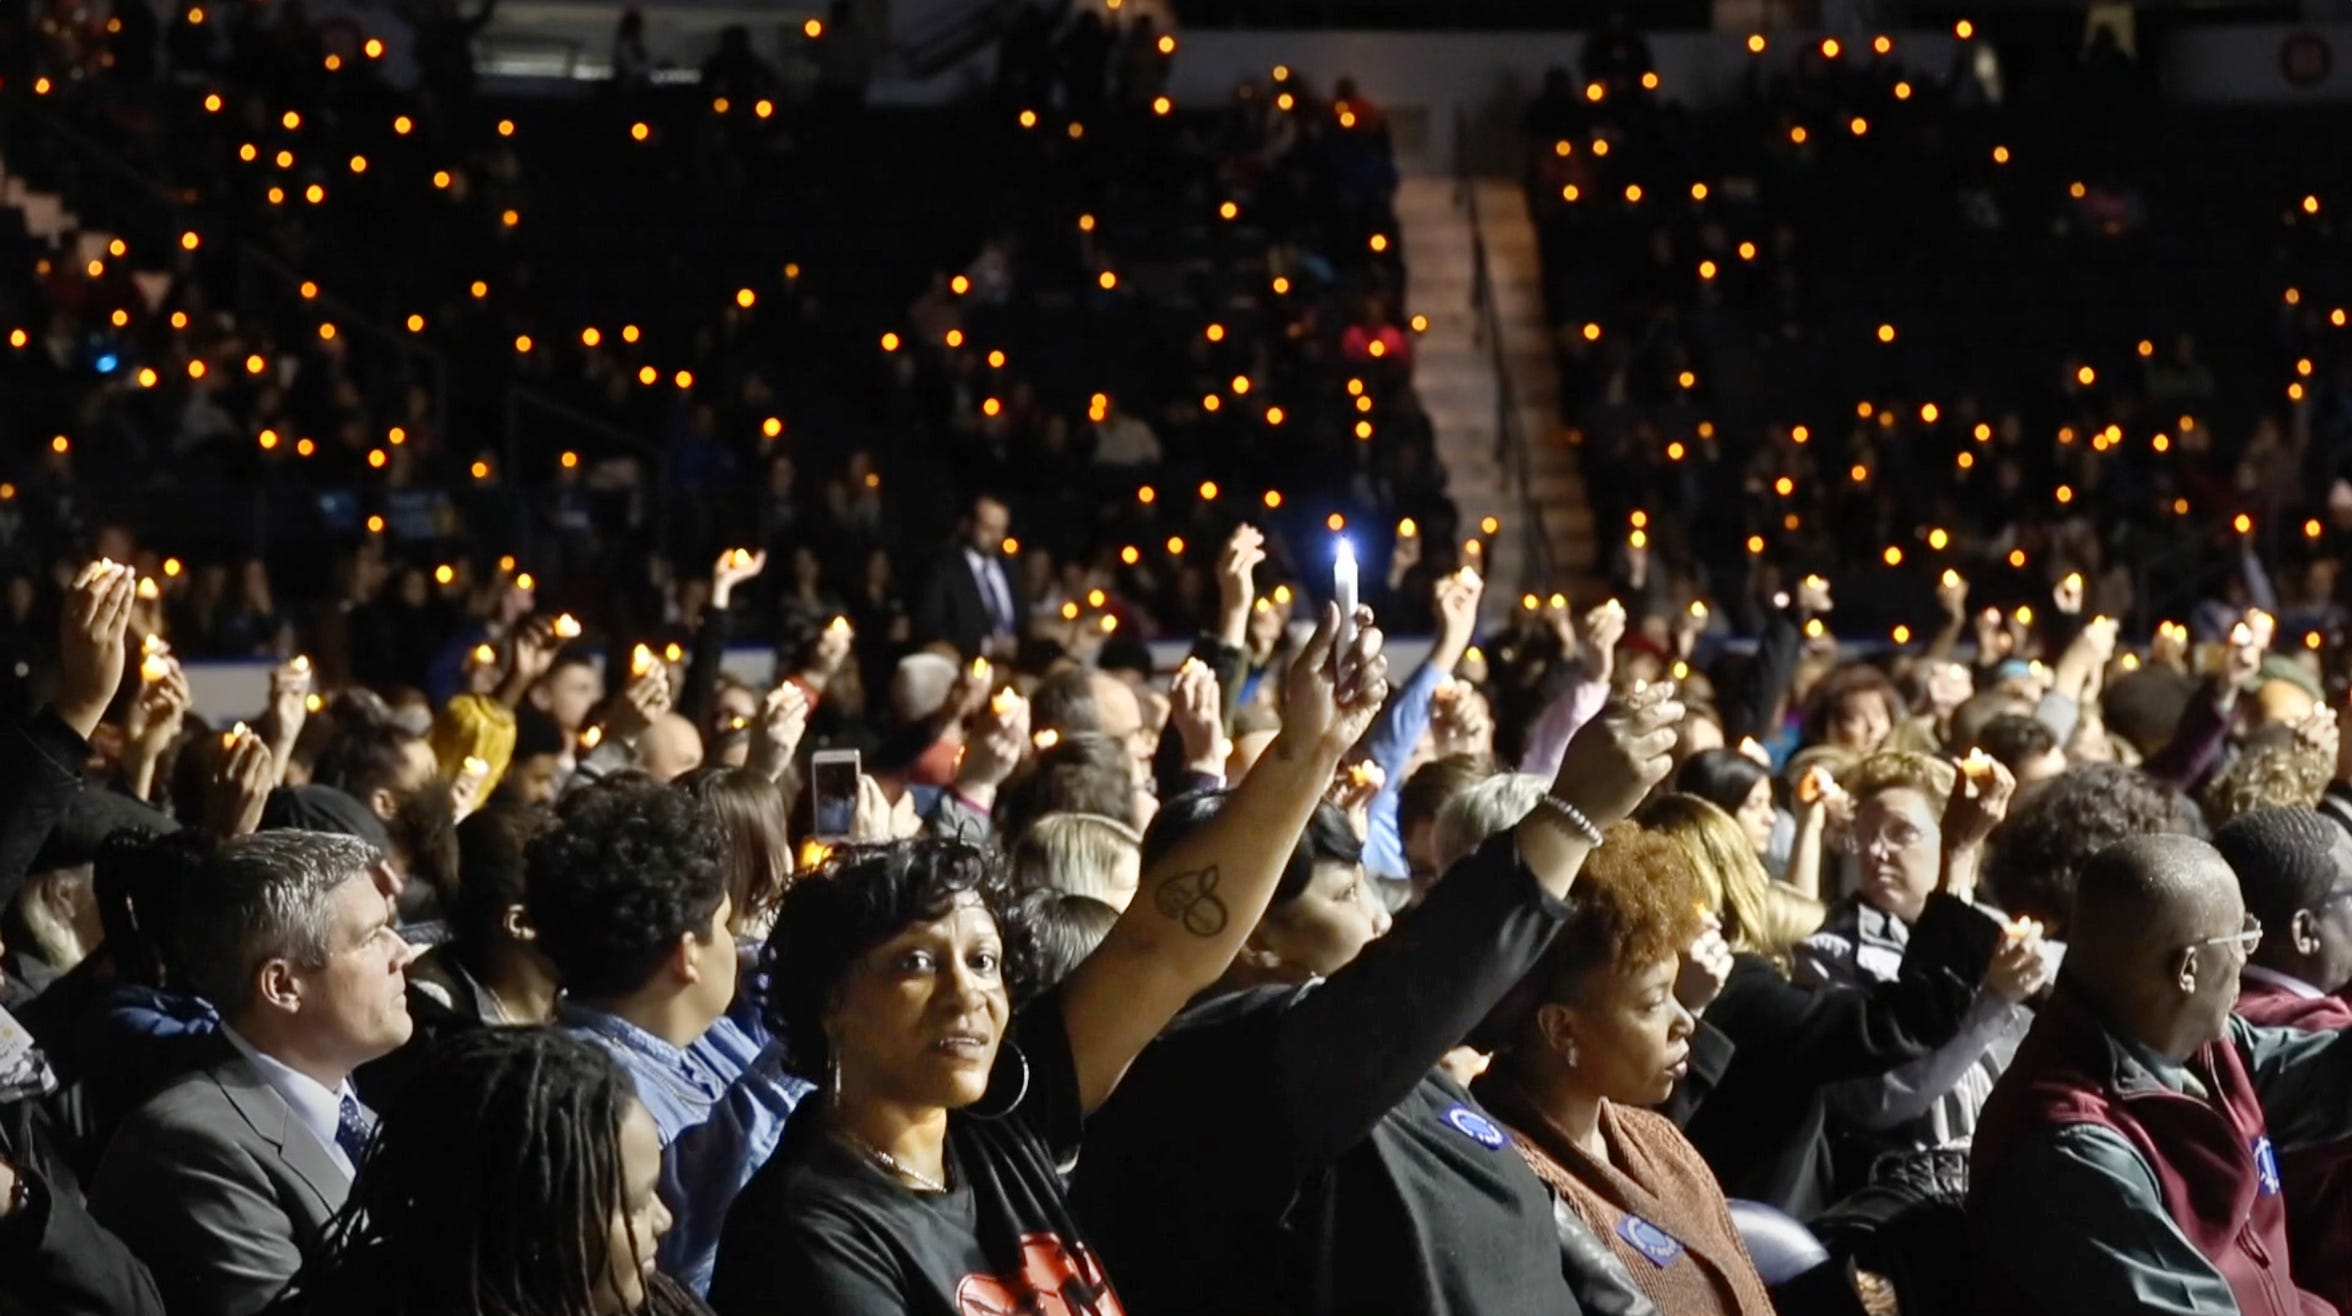 Hundreds of people raise LED candles in a show of support and love for Trevyan Rowe during a vigil held for the 14-year-old at the Blue Cross Arena at the War Memorial.